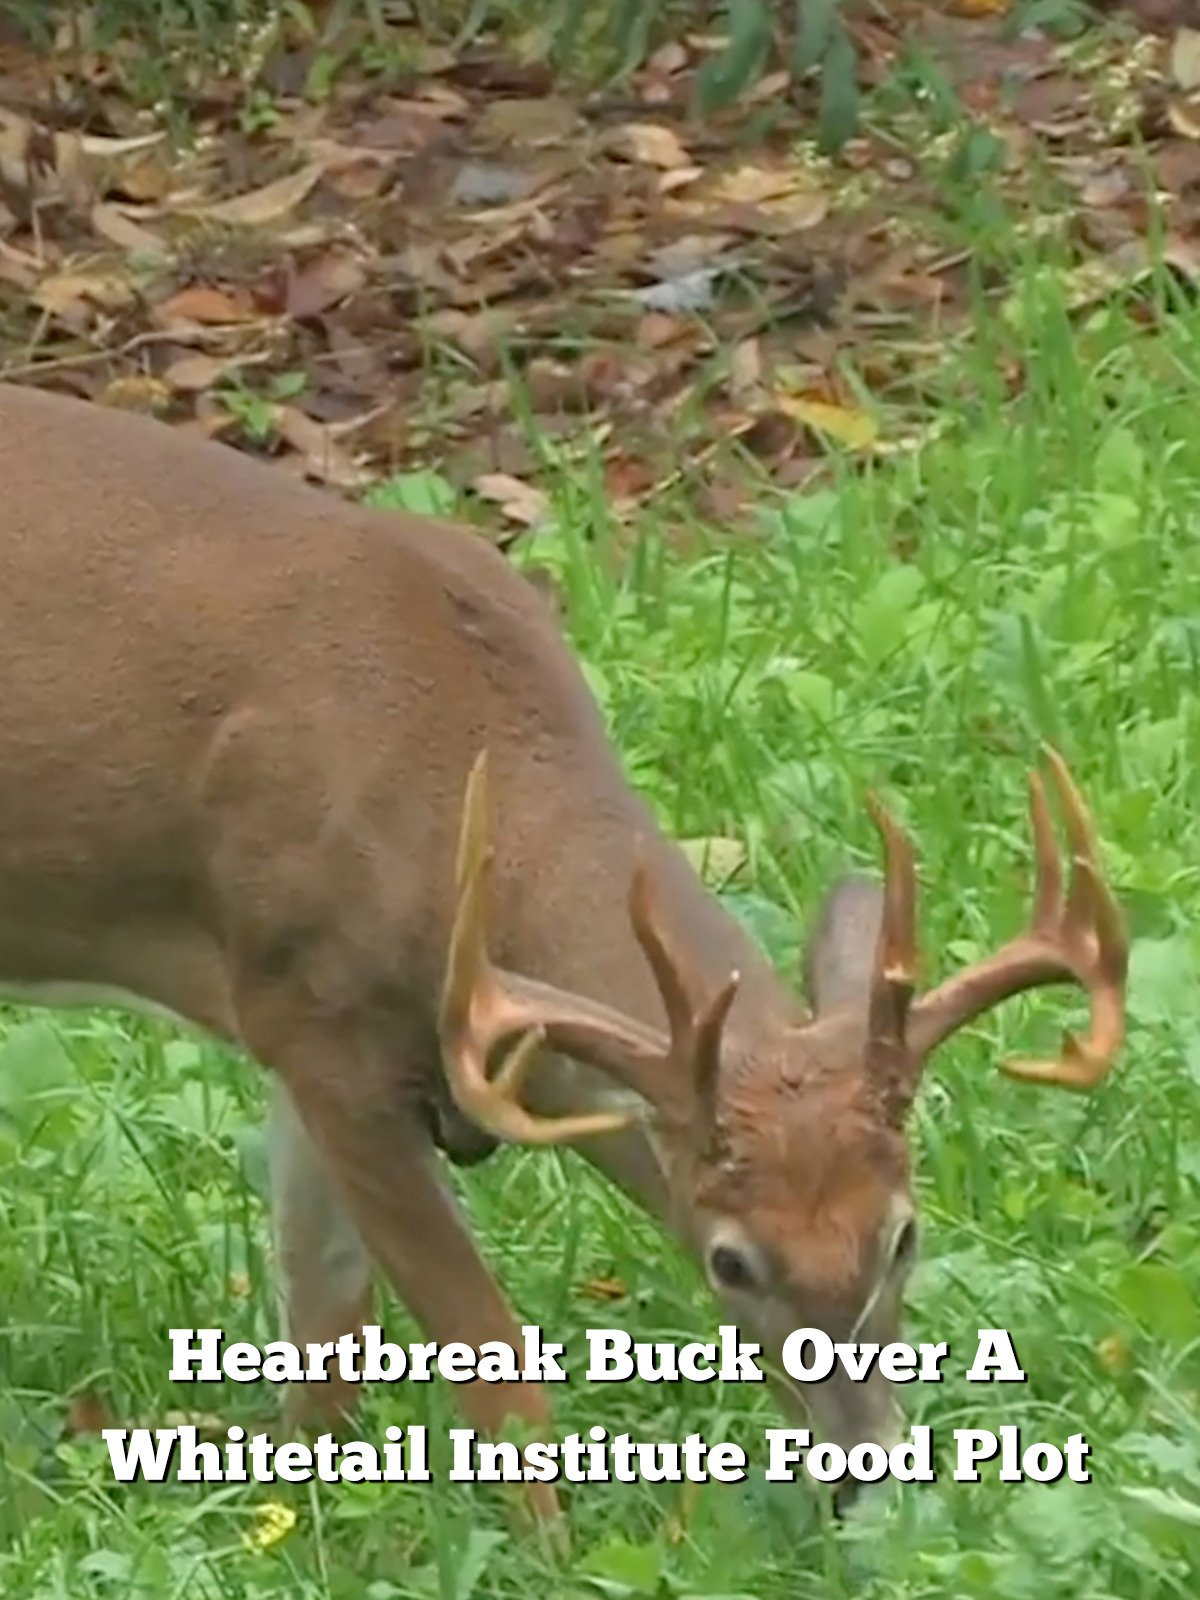 Heartbreak Buck Over A Whitetail Institute Food Plot